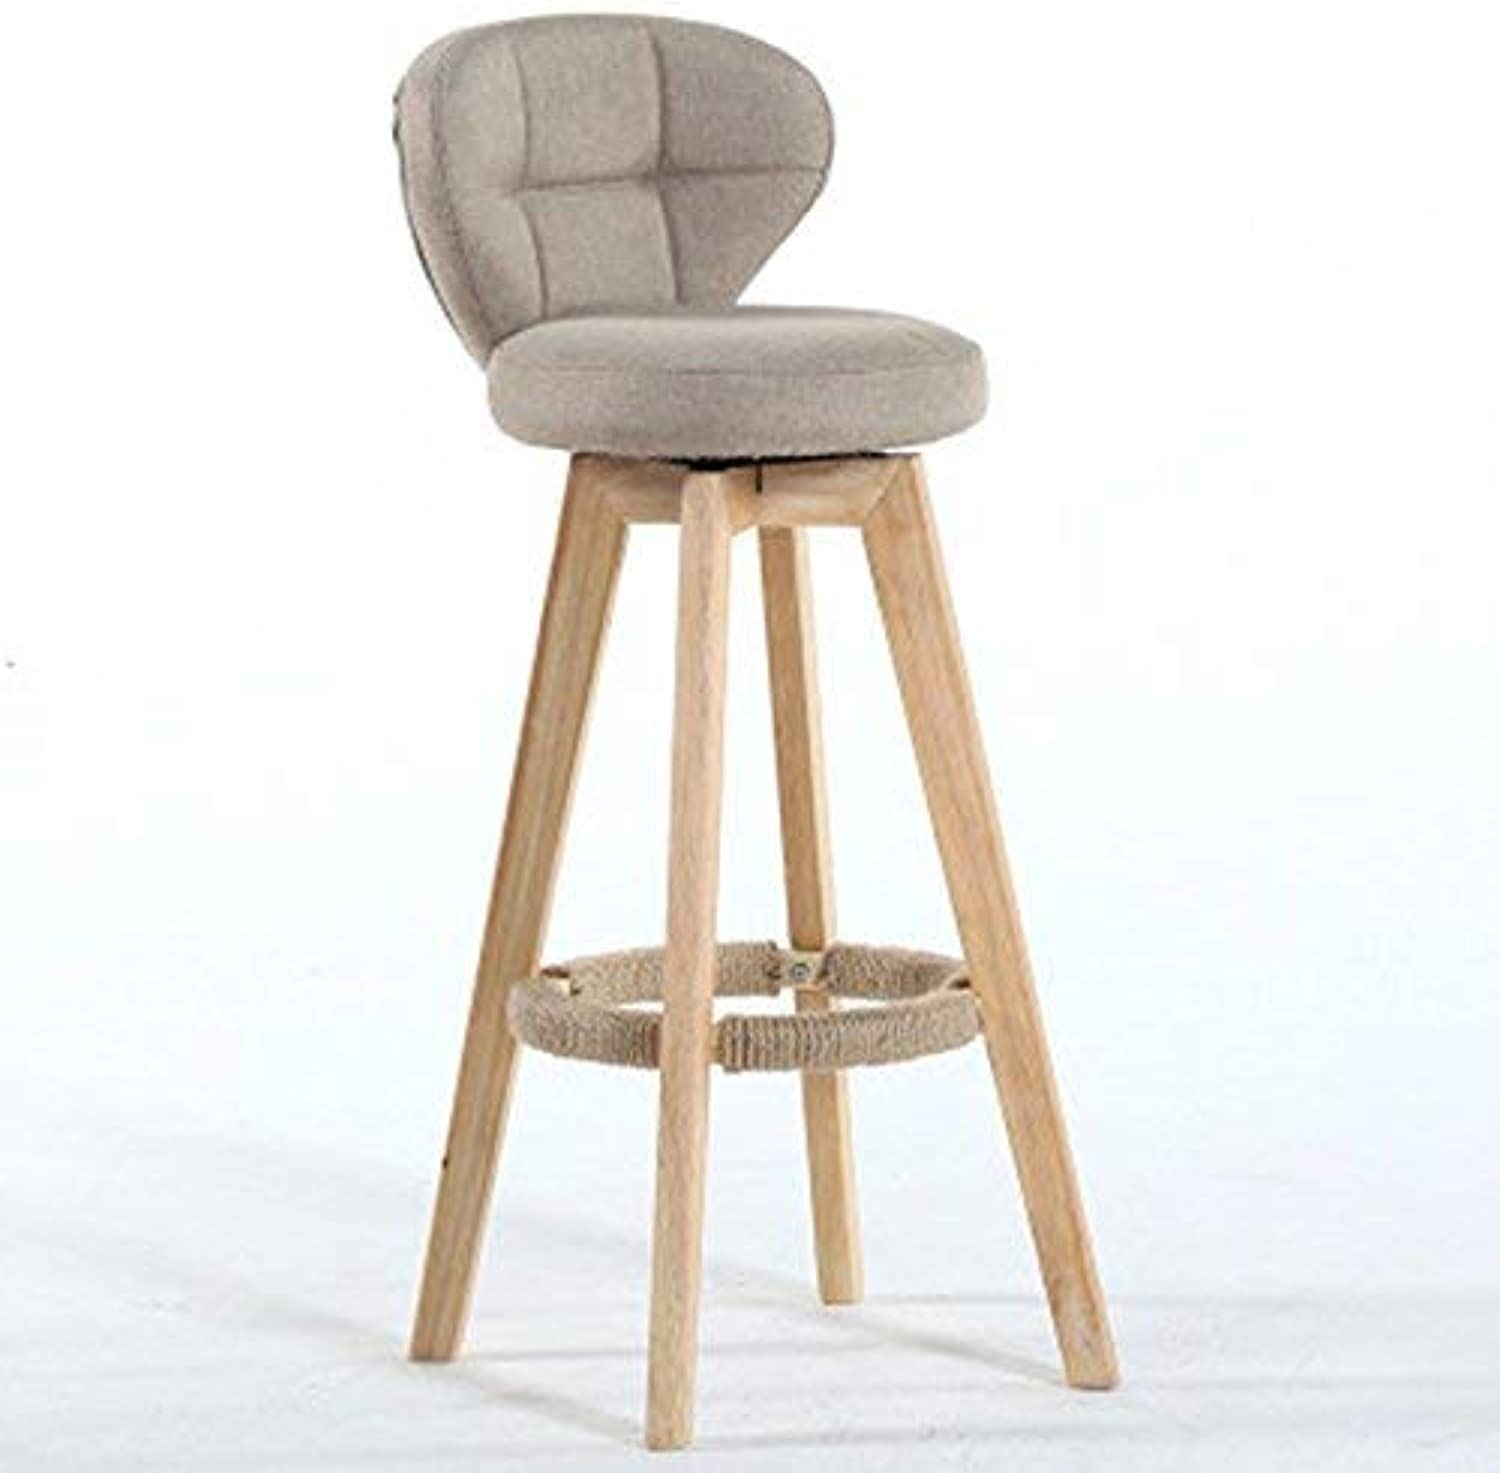 YZH Bar Stool High Wooden Chair, Living Room Reception   Beauty Salon Barber Shop Fashion Chair Stool